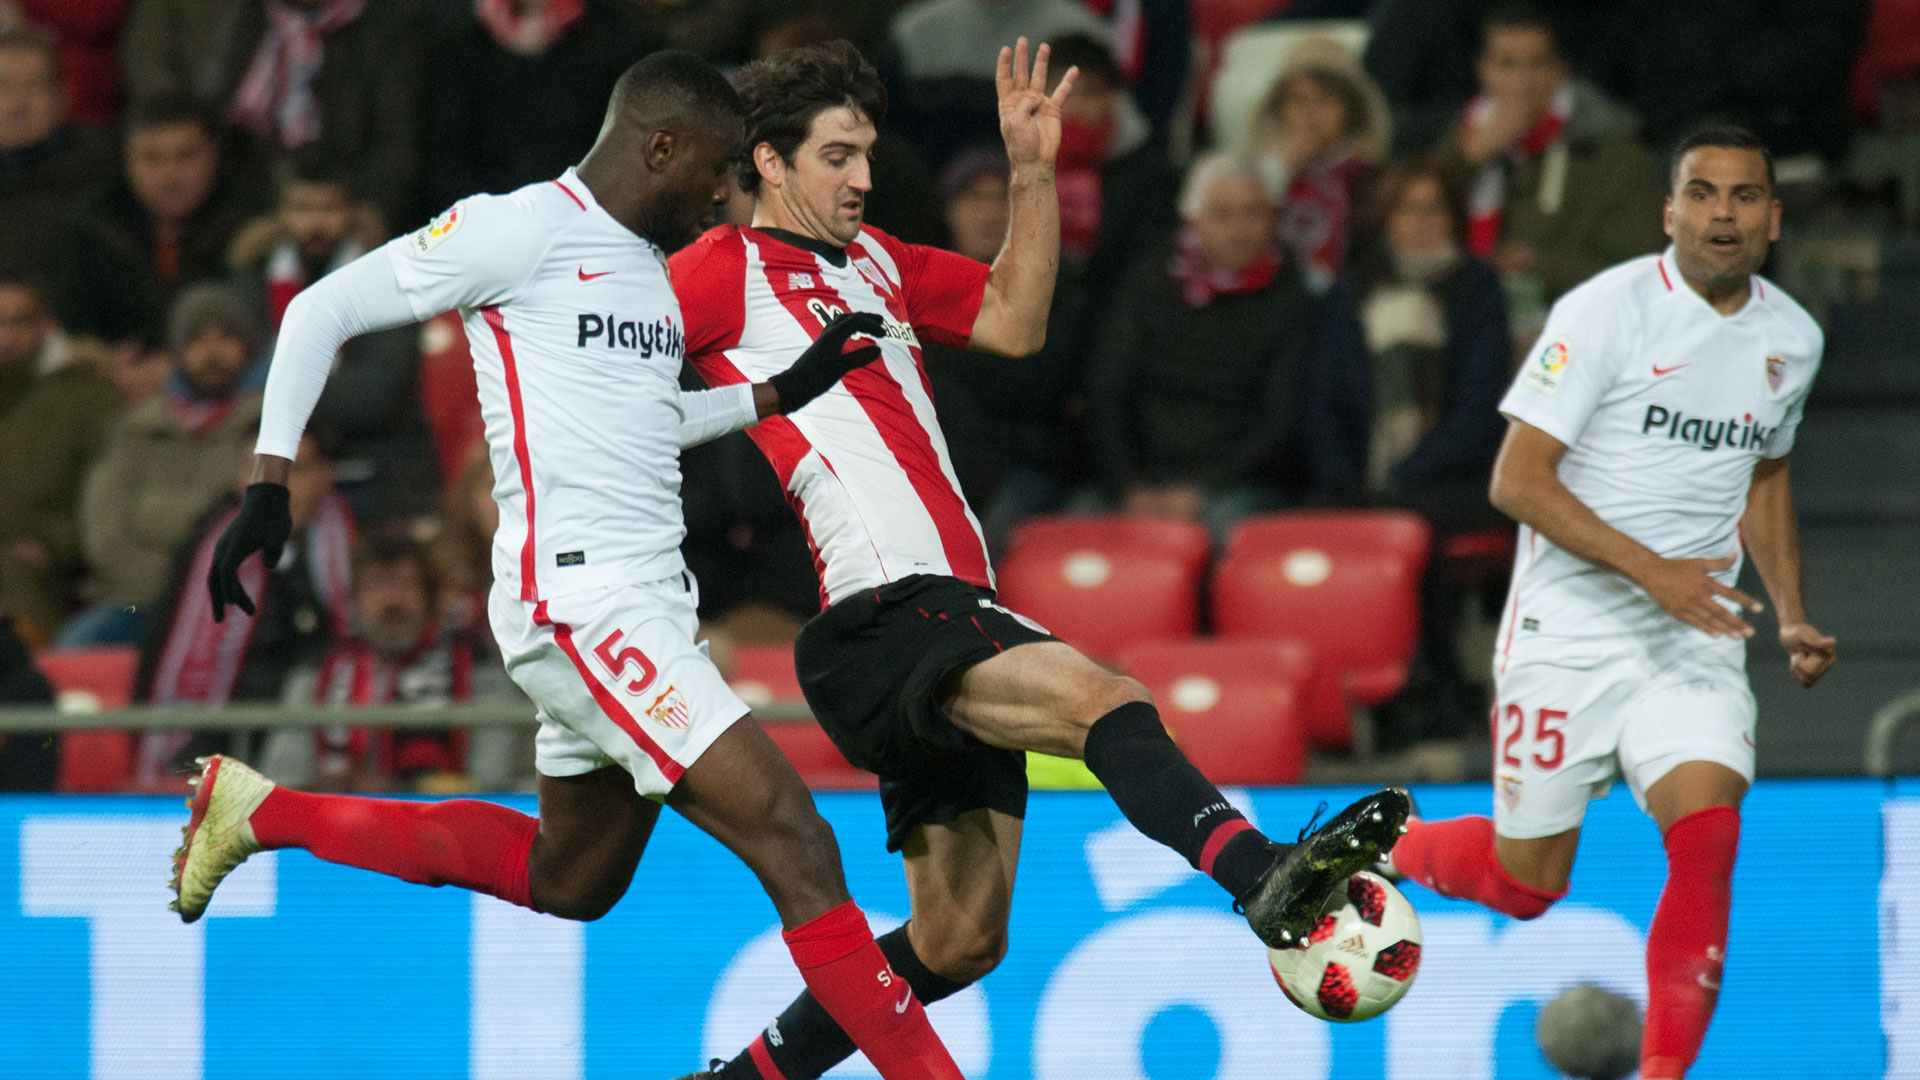 Sevilla FC – Athletic Club